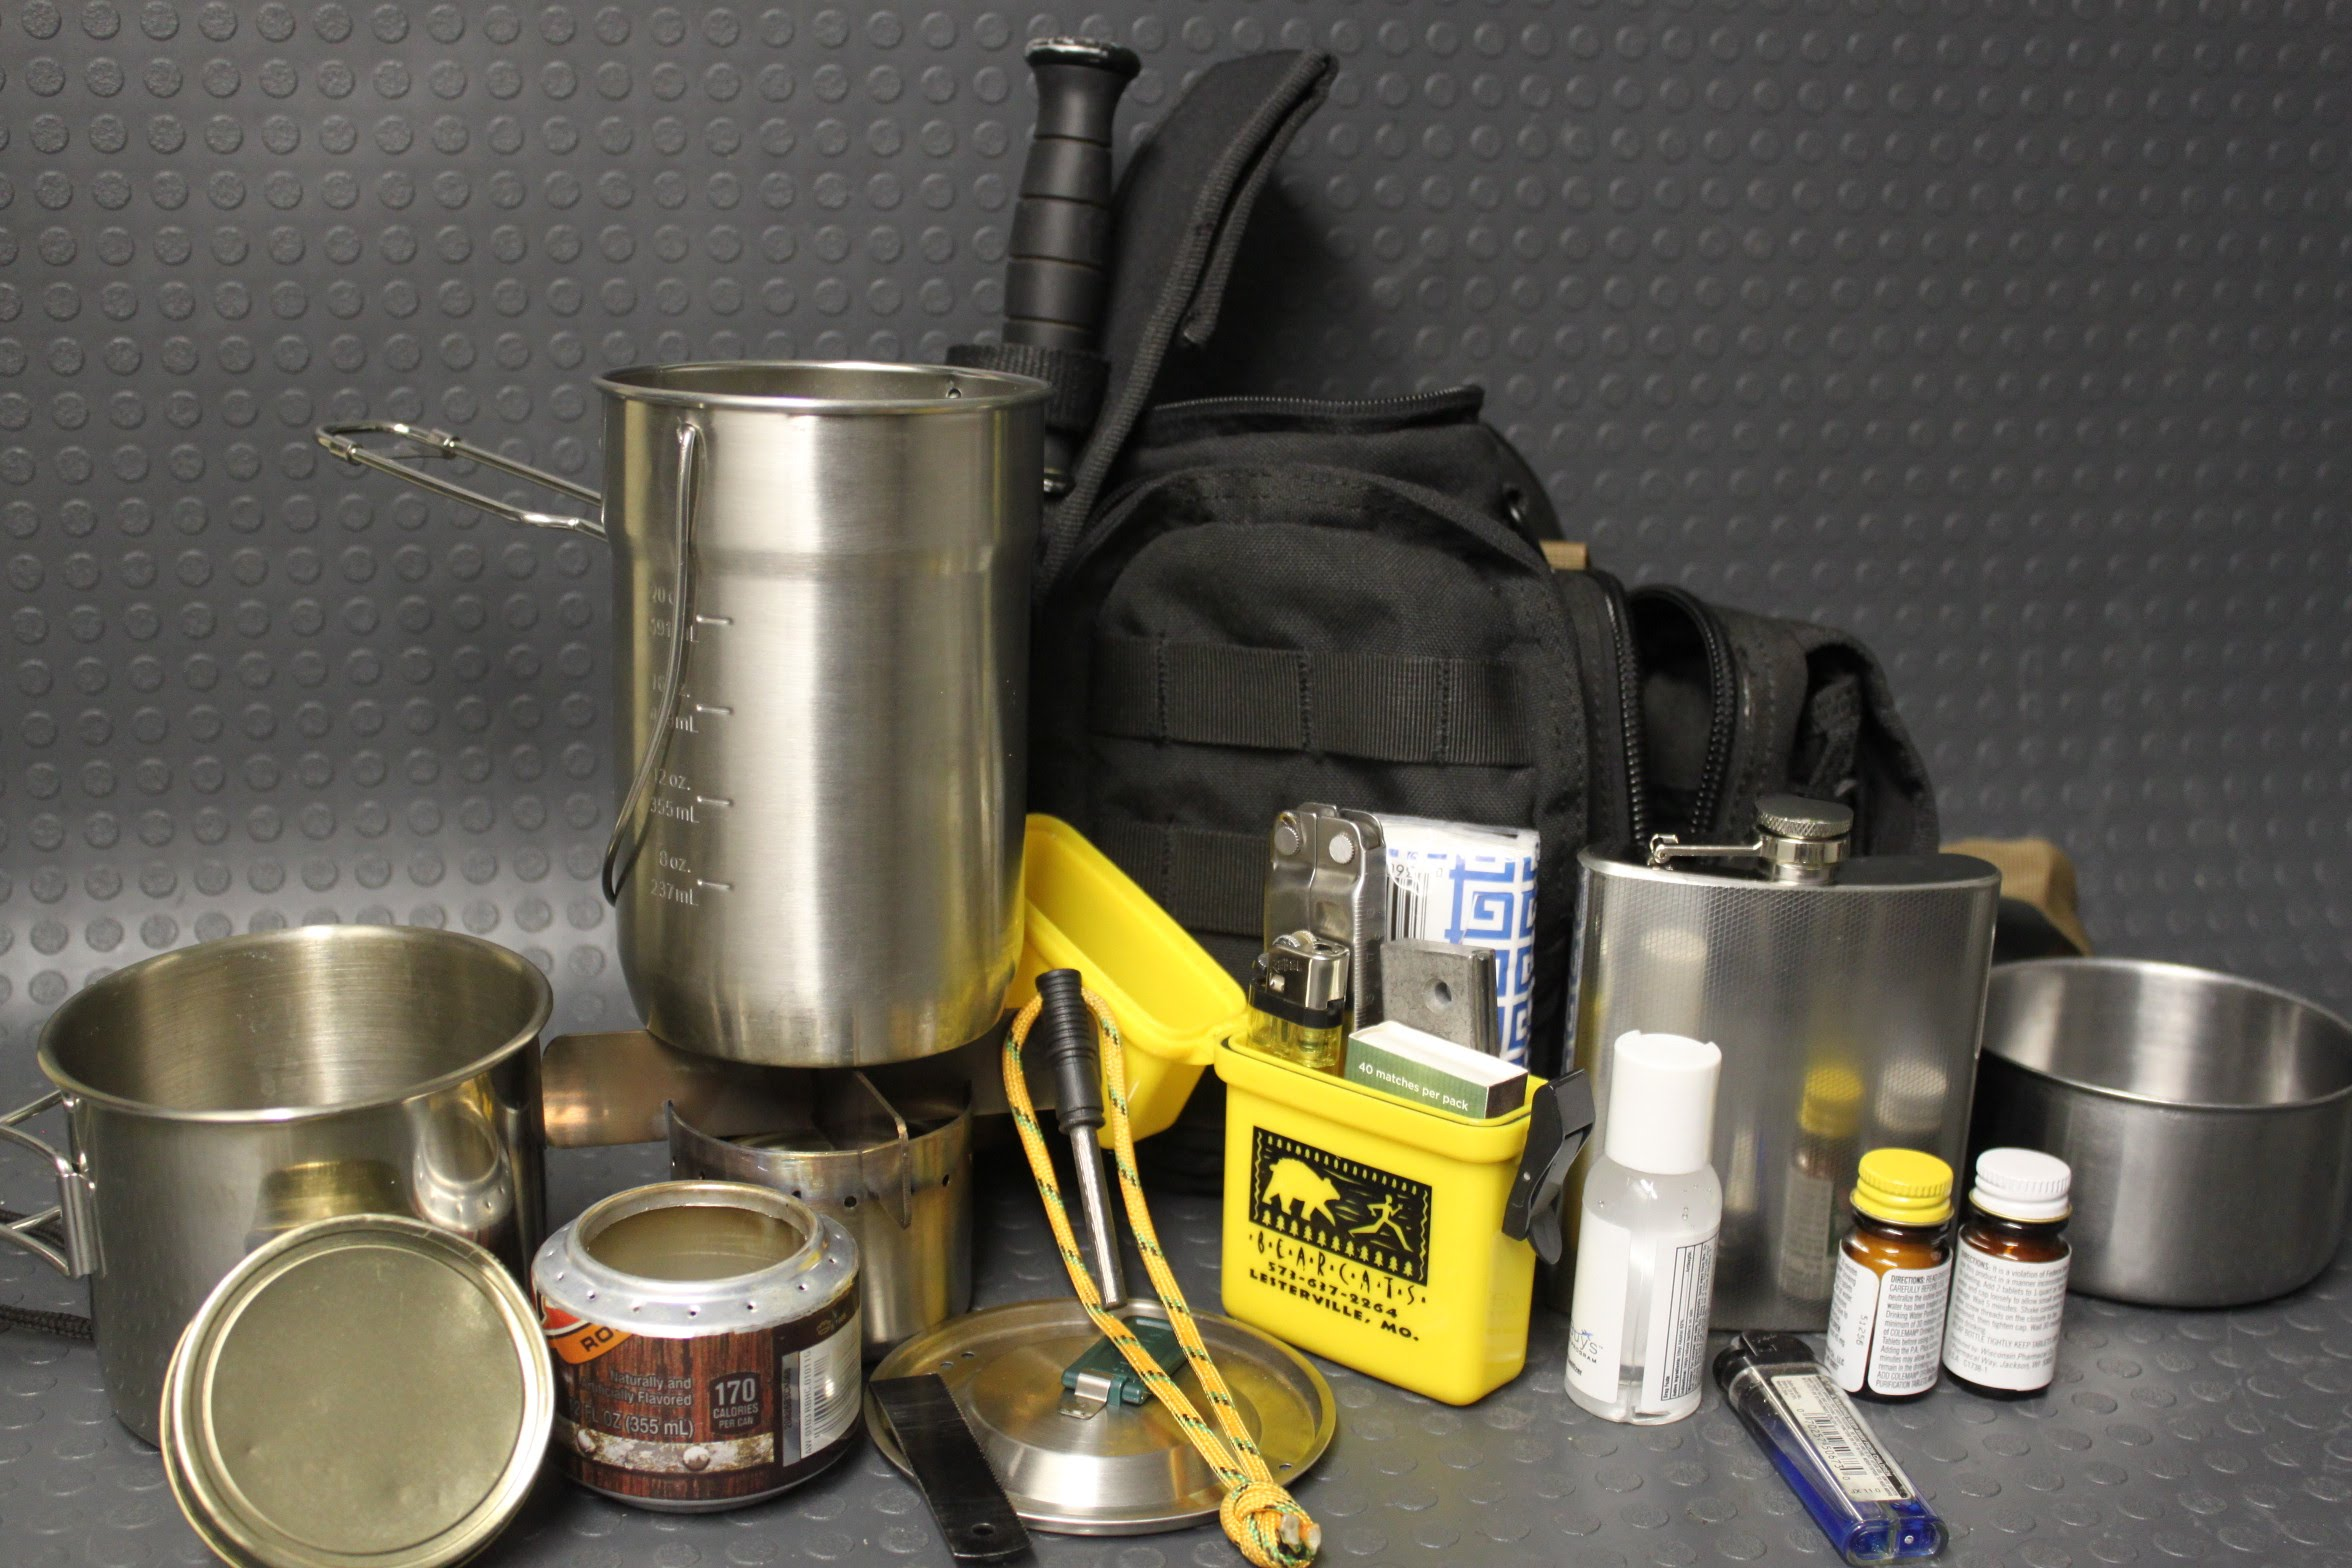 Budget survival quality cook camp kit ZRUS